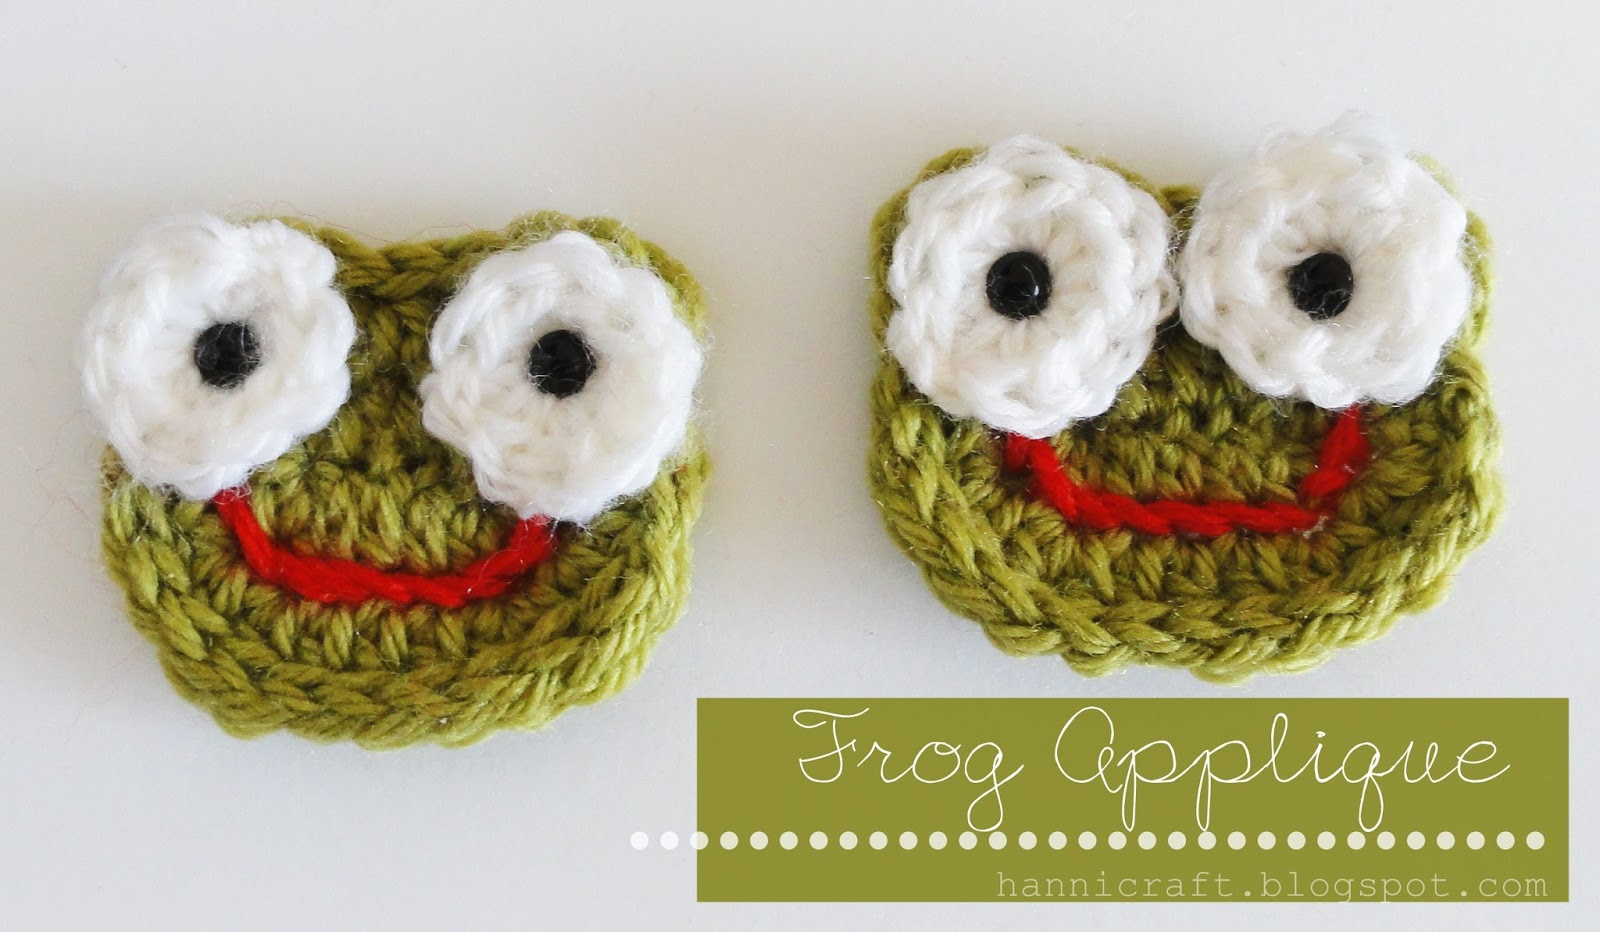 Crochet Applique : hannicraft: Crochet Frog Applique {pattern}